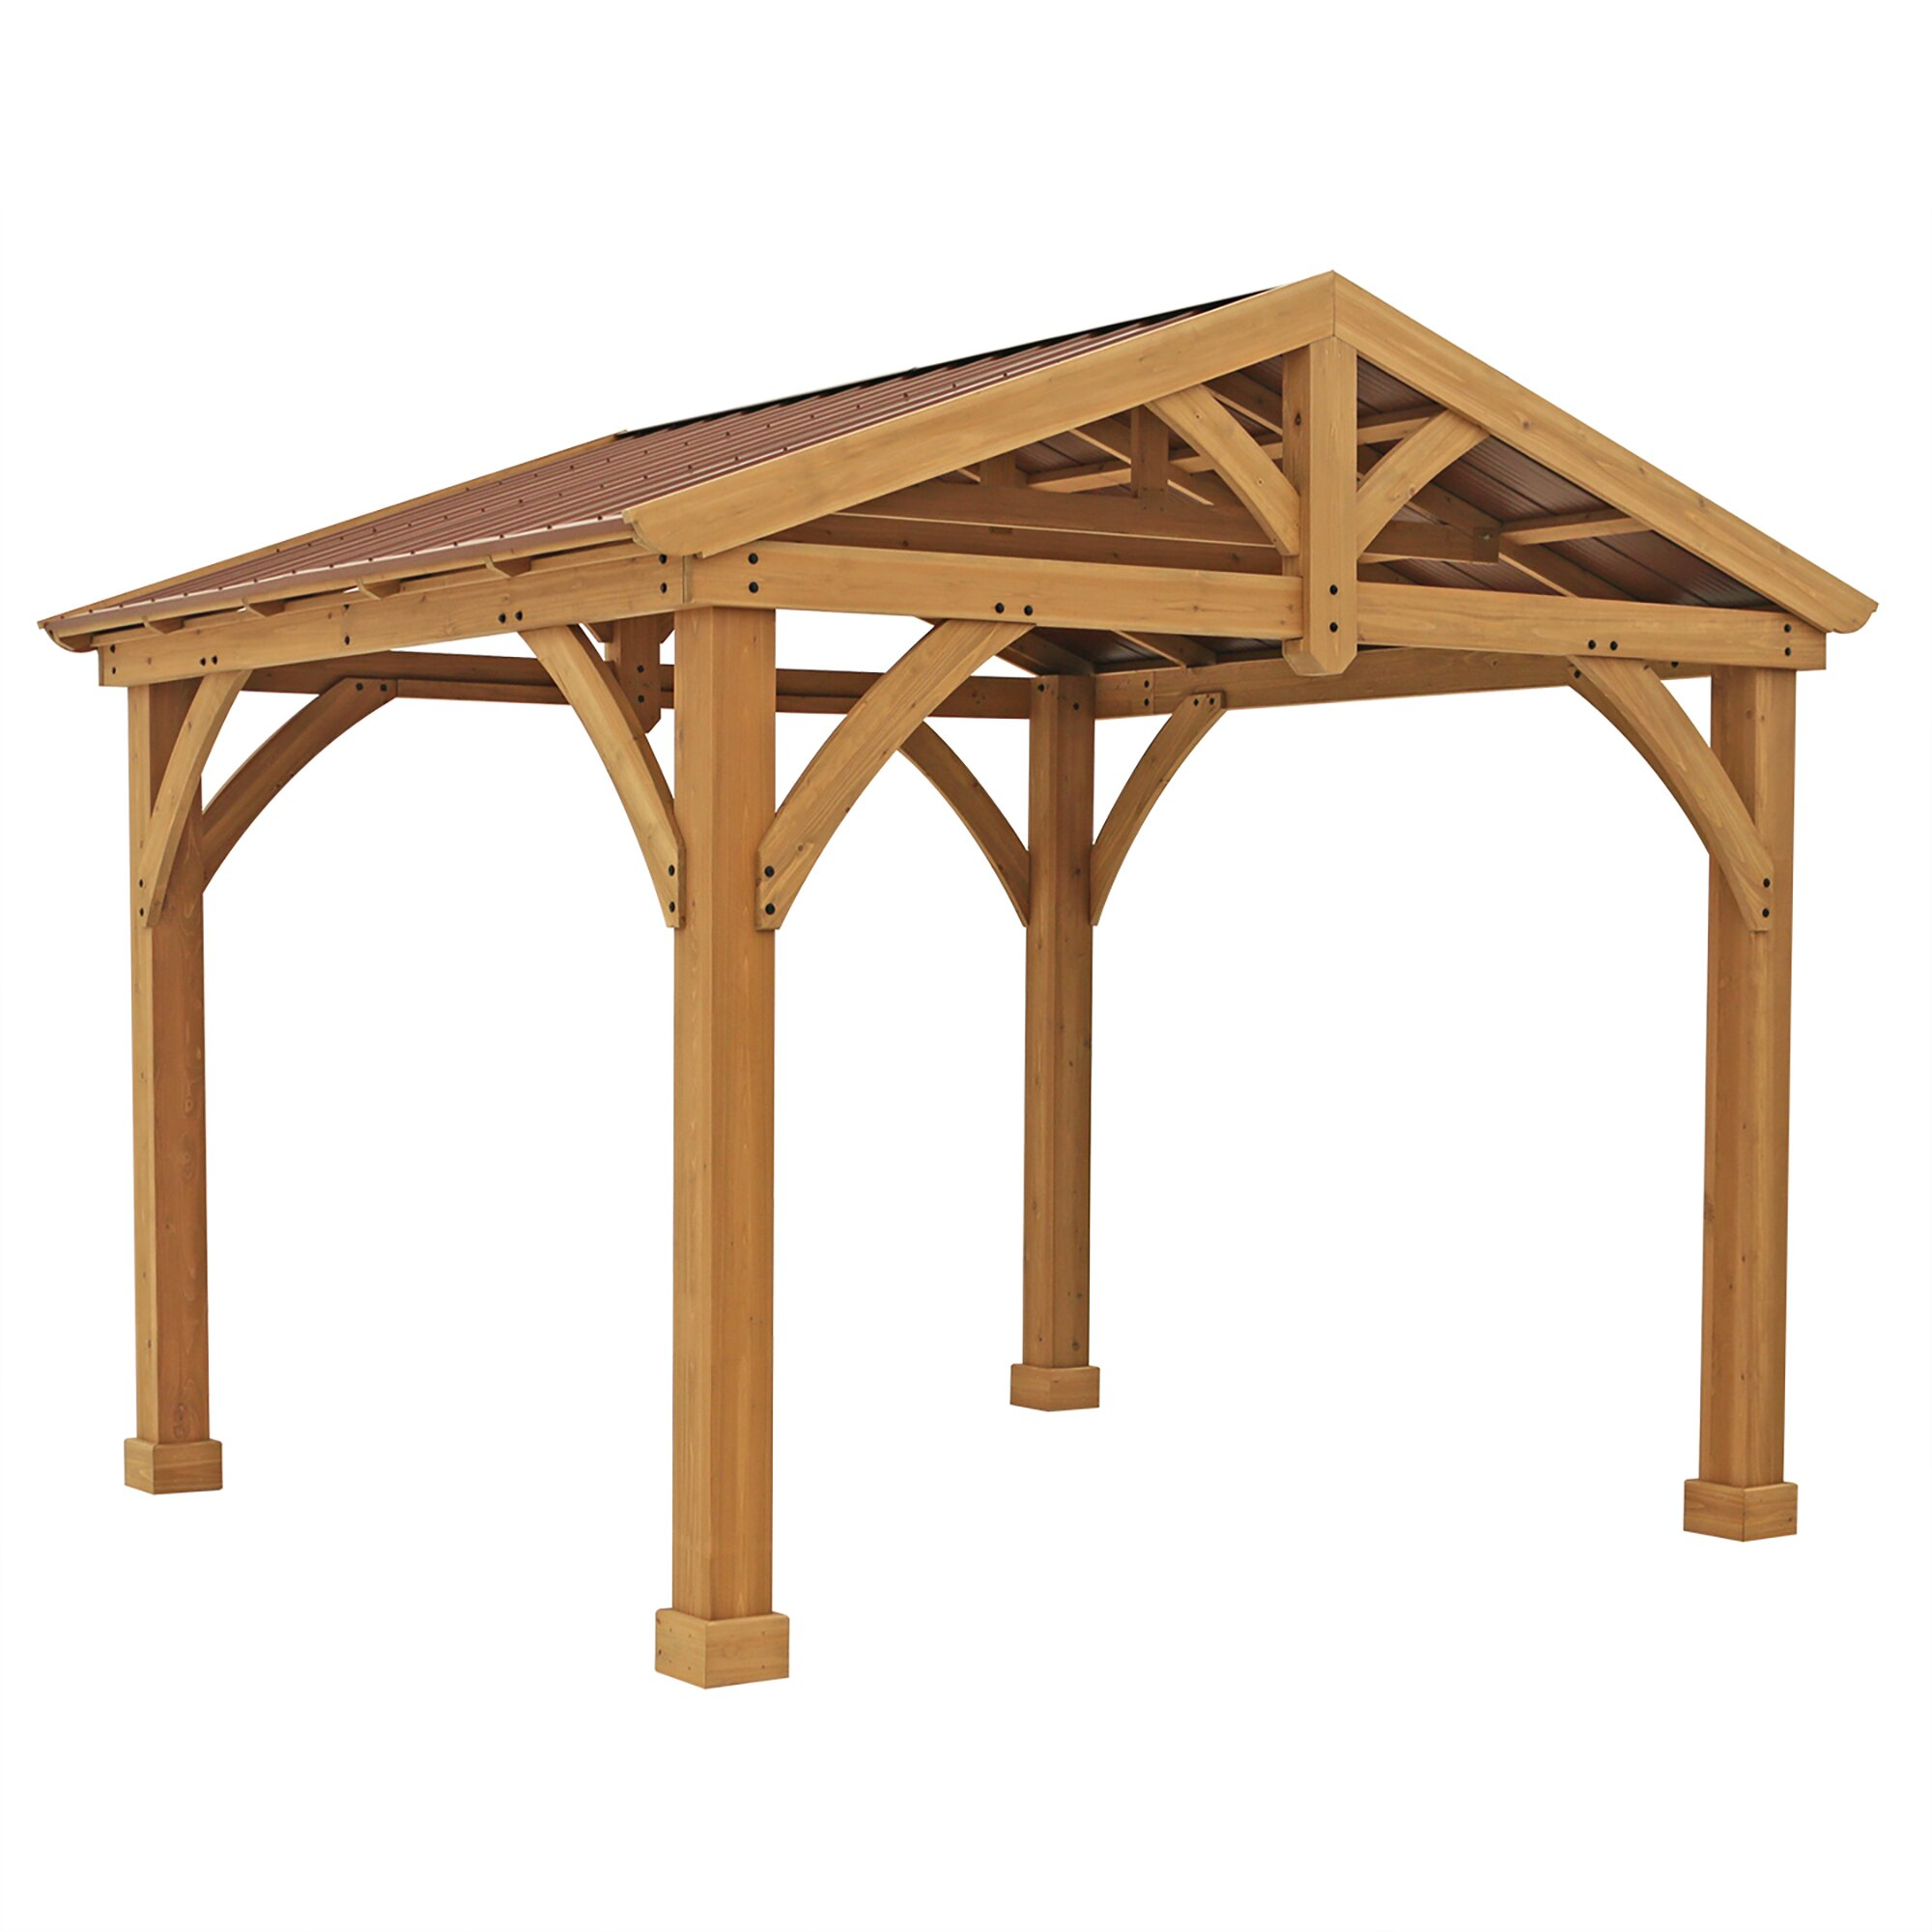 Yardistry Avery Pavilion 10 Ft. W x 12 Ft. D Wood ...